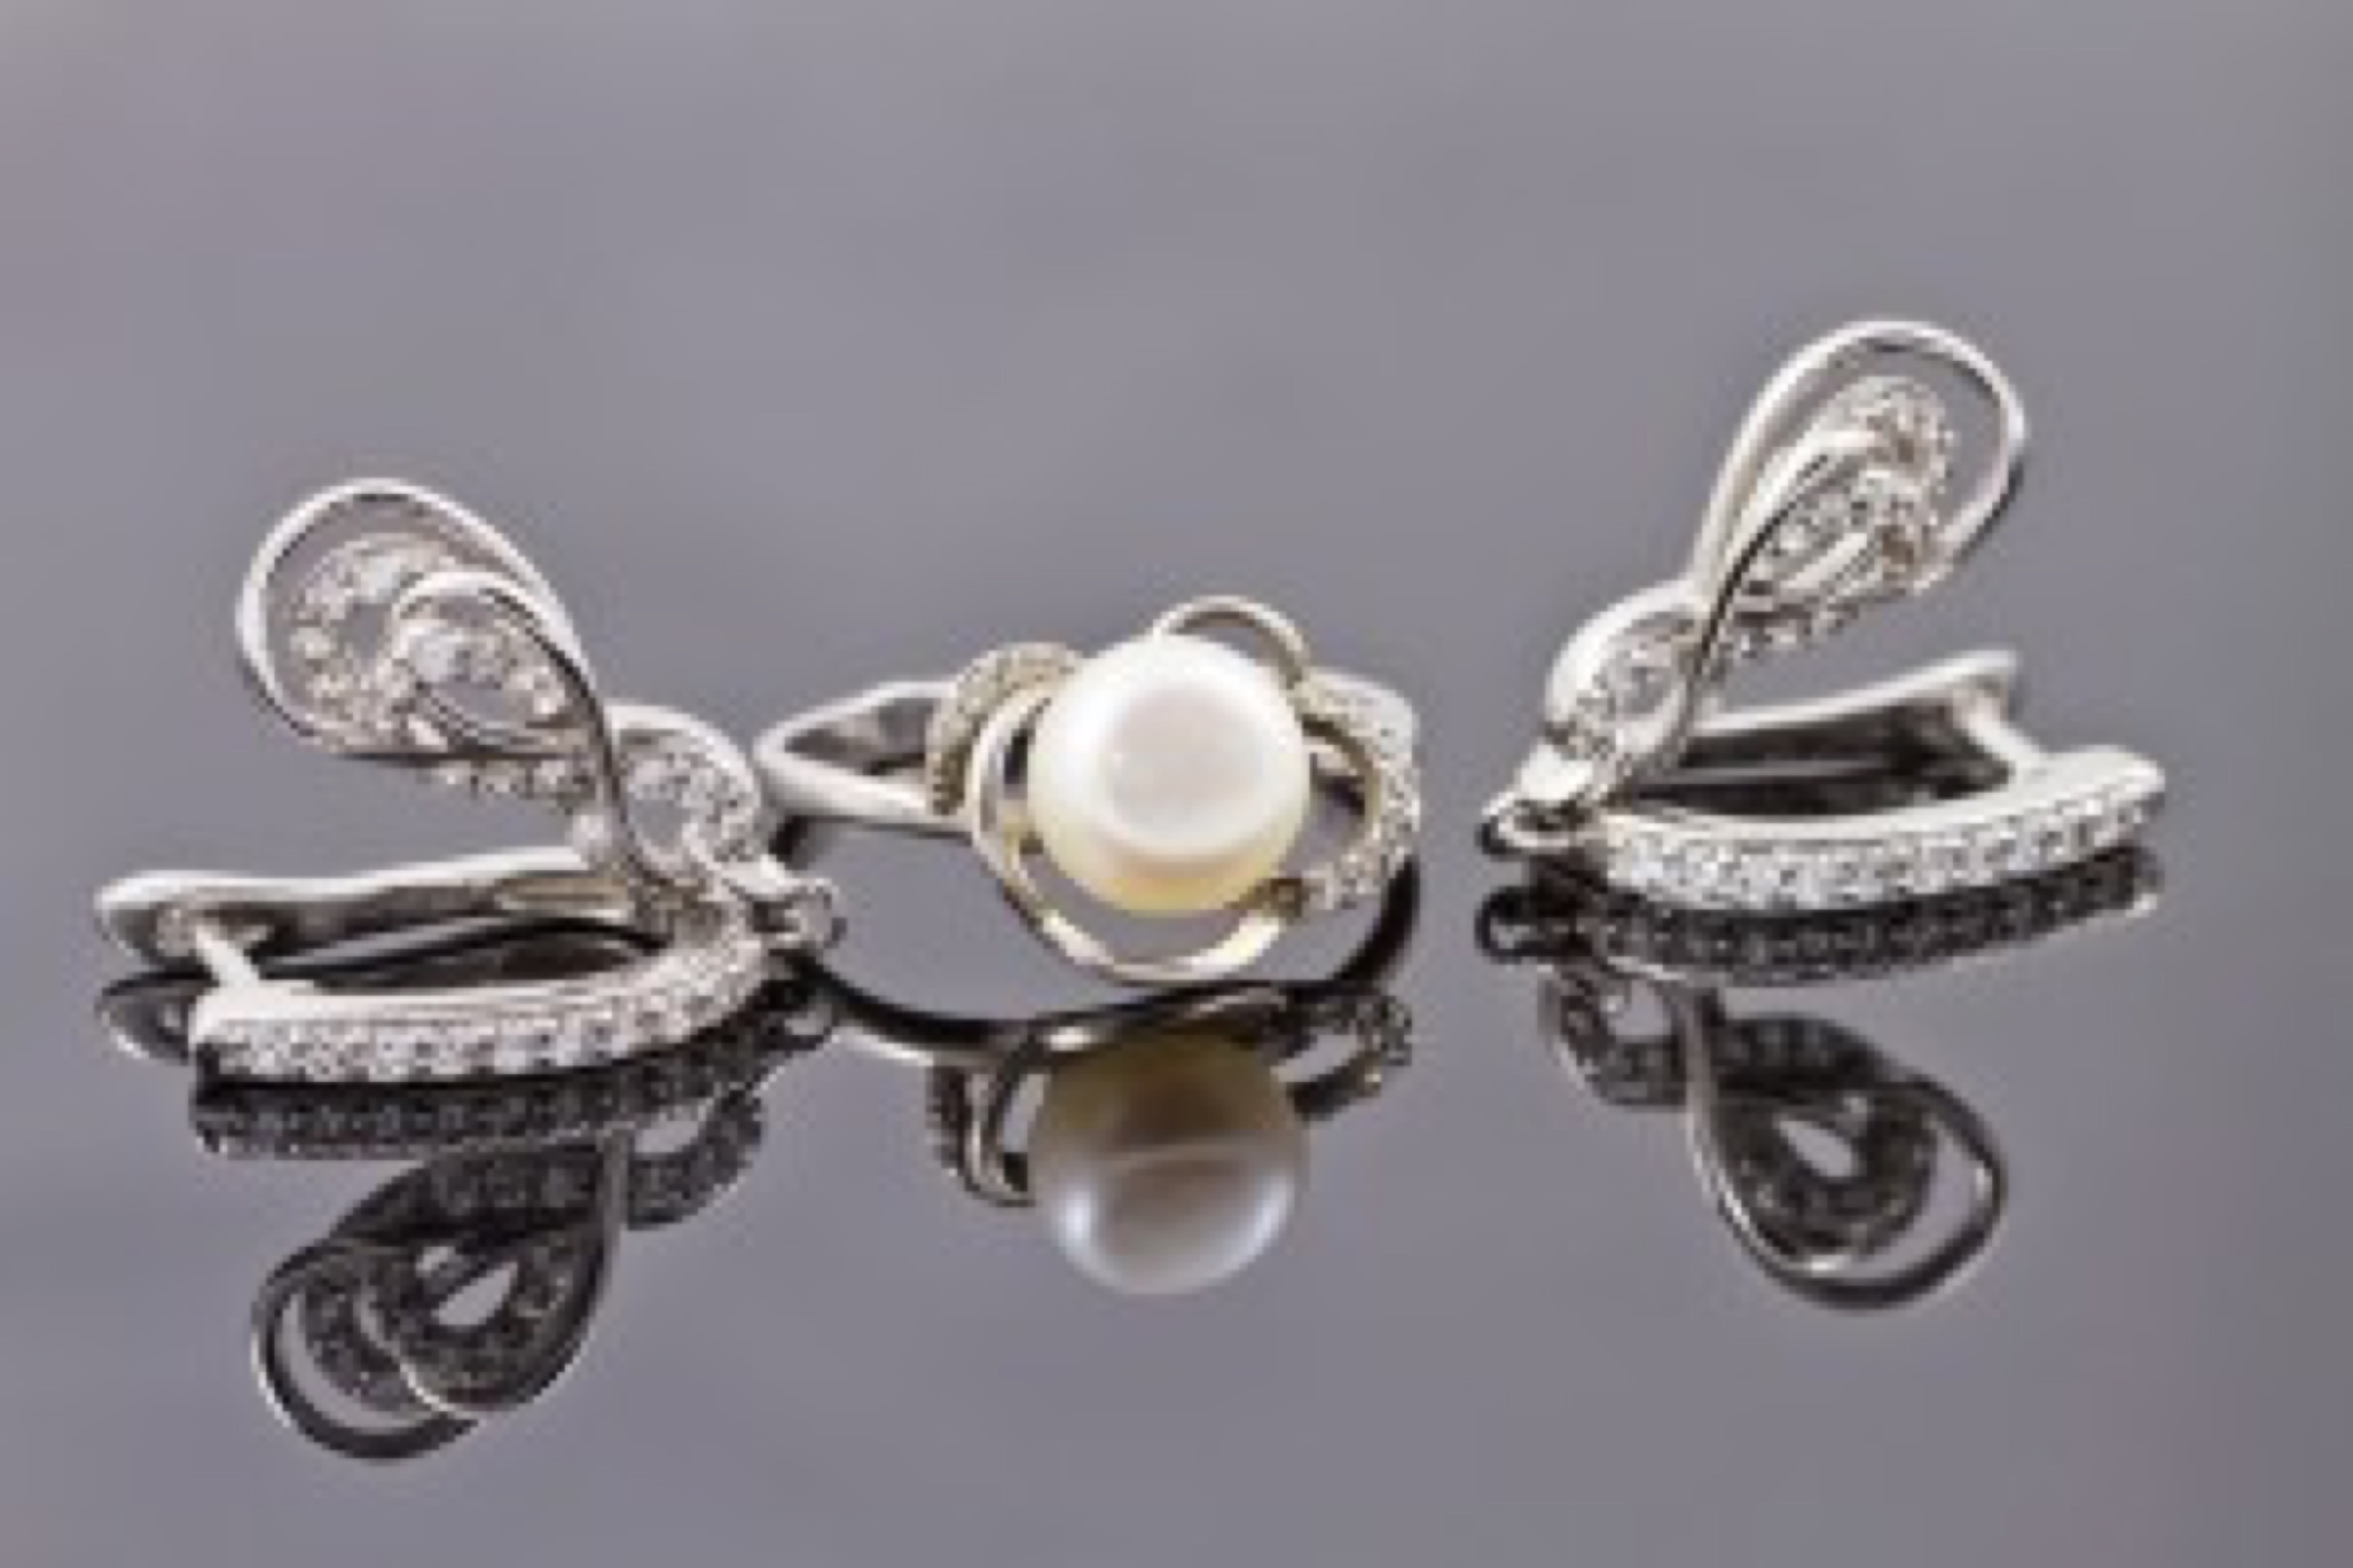 A set of fine silver jewelry : ring and earring